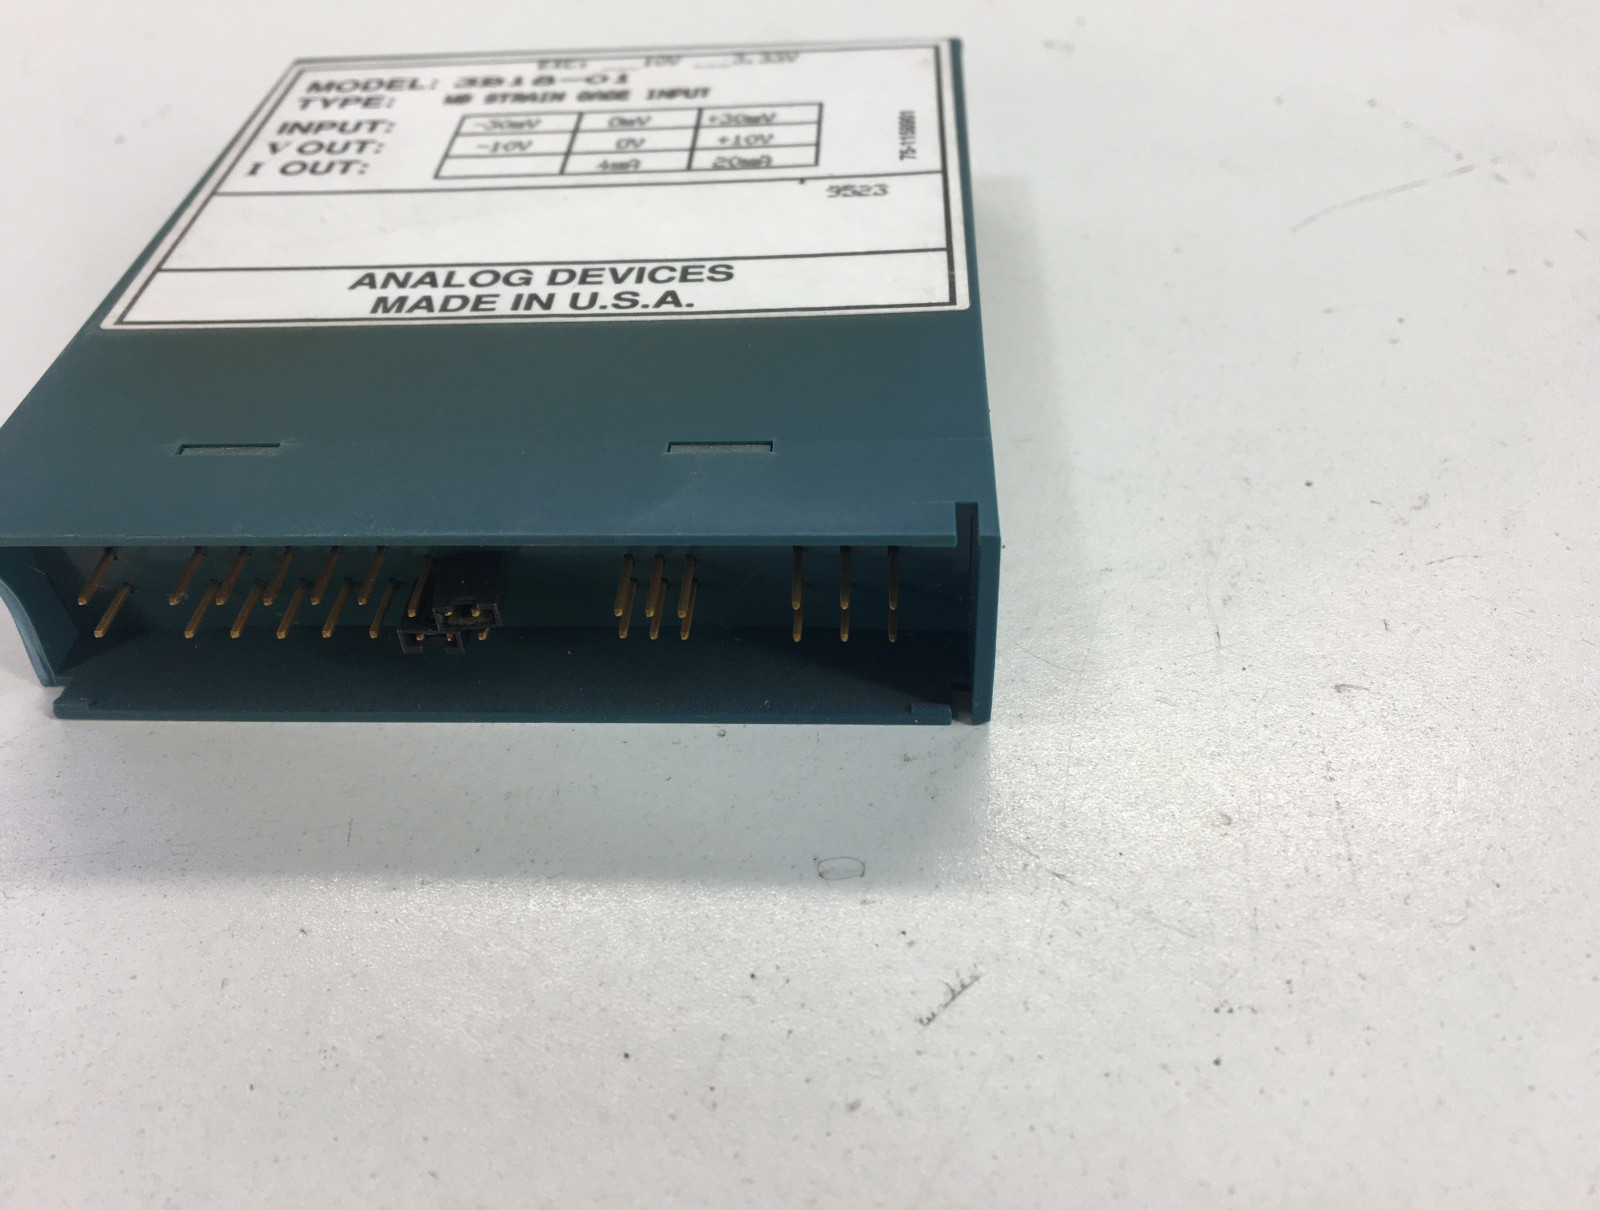 ANALOG DEVICES 3B18-01 WB STRAIN GAGE INPUT